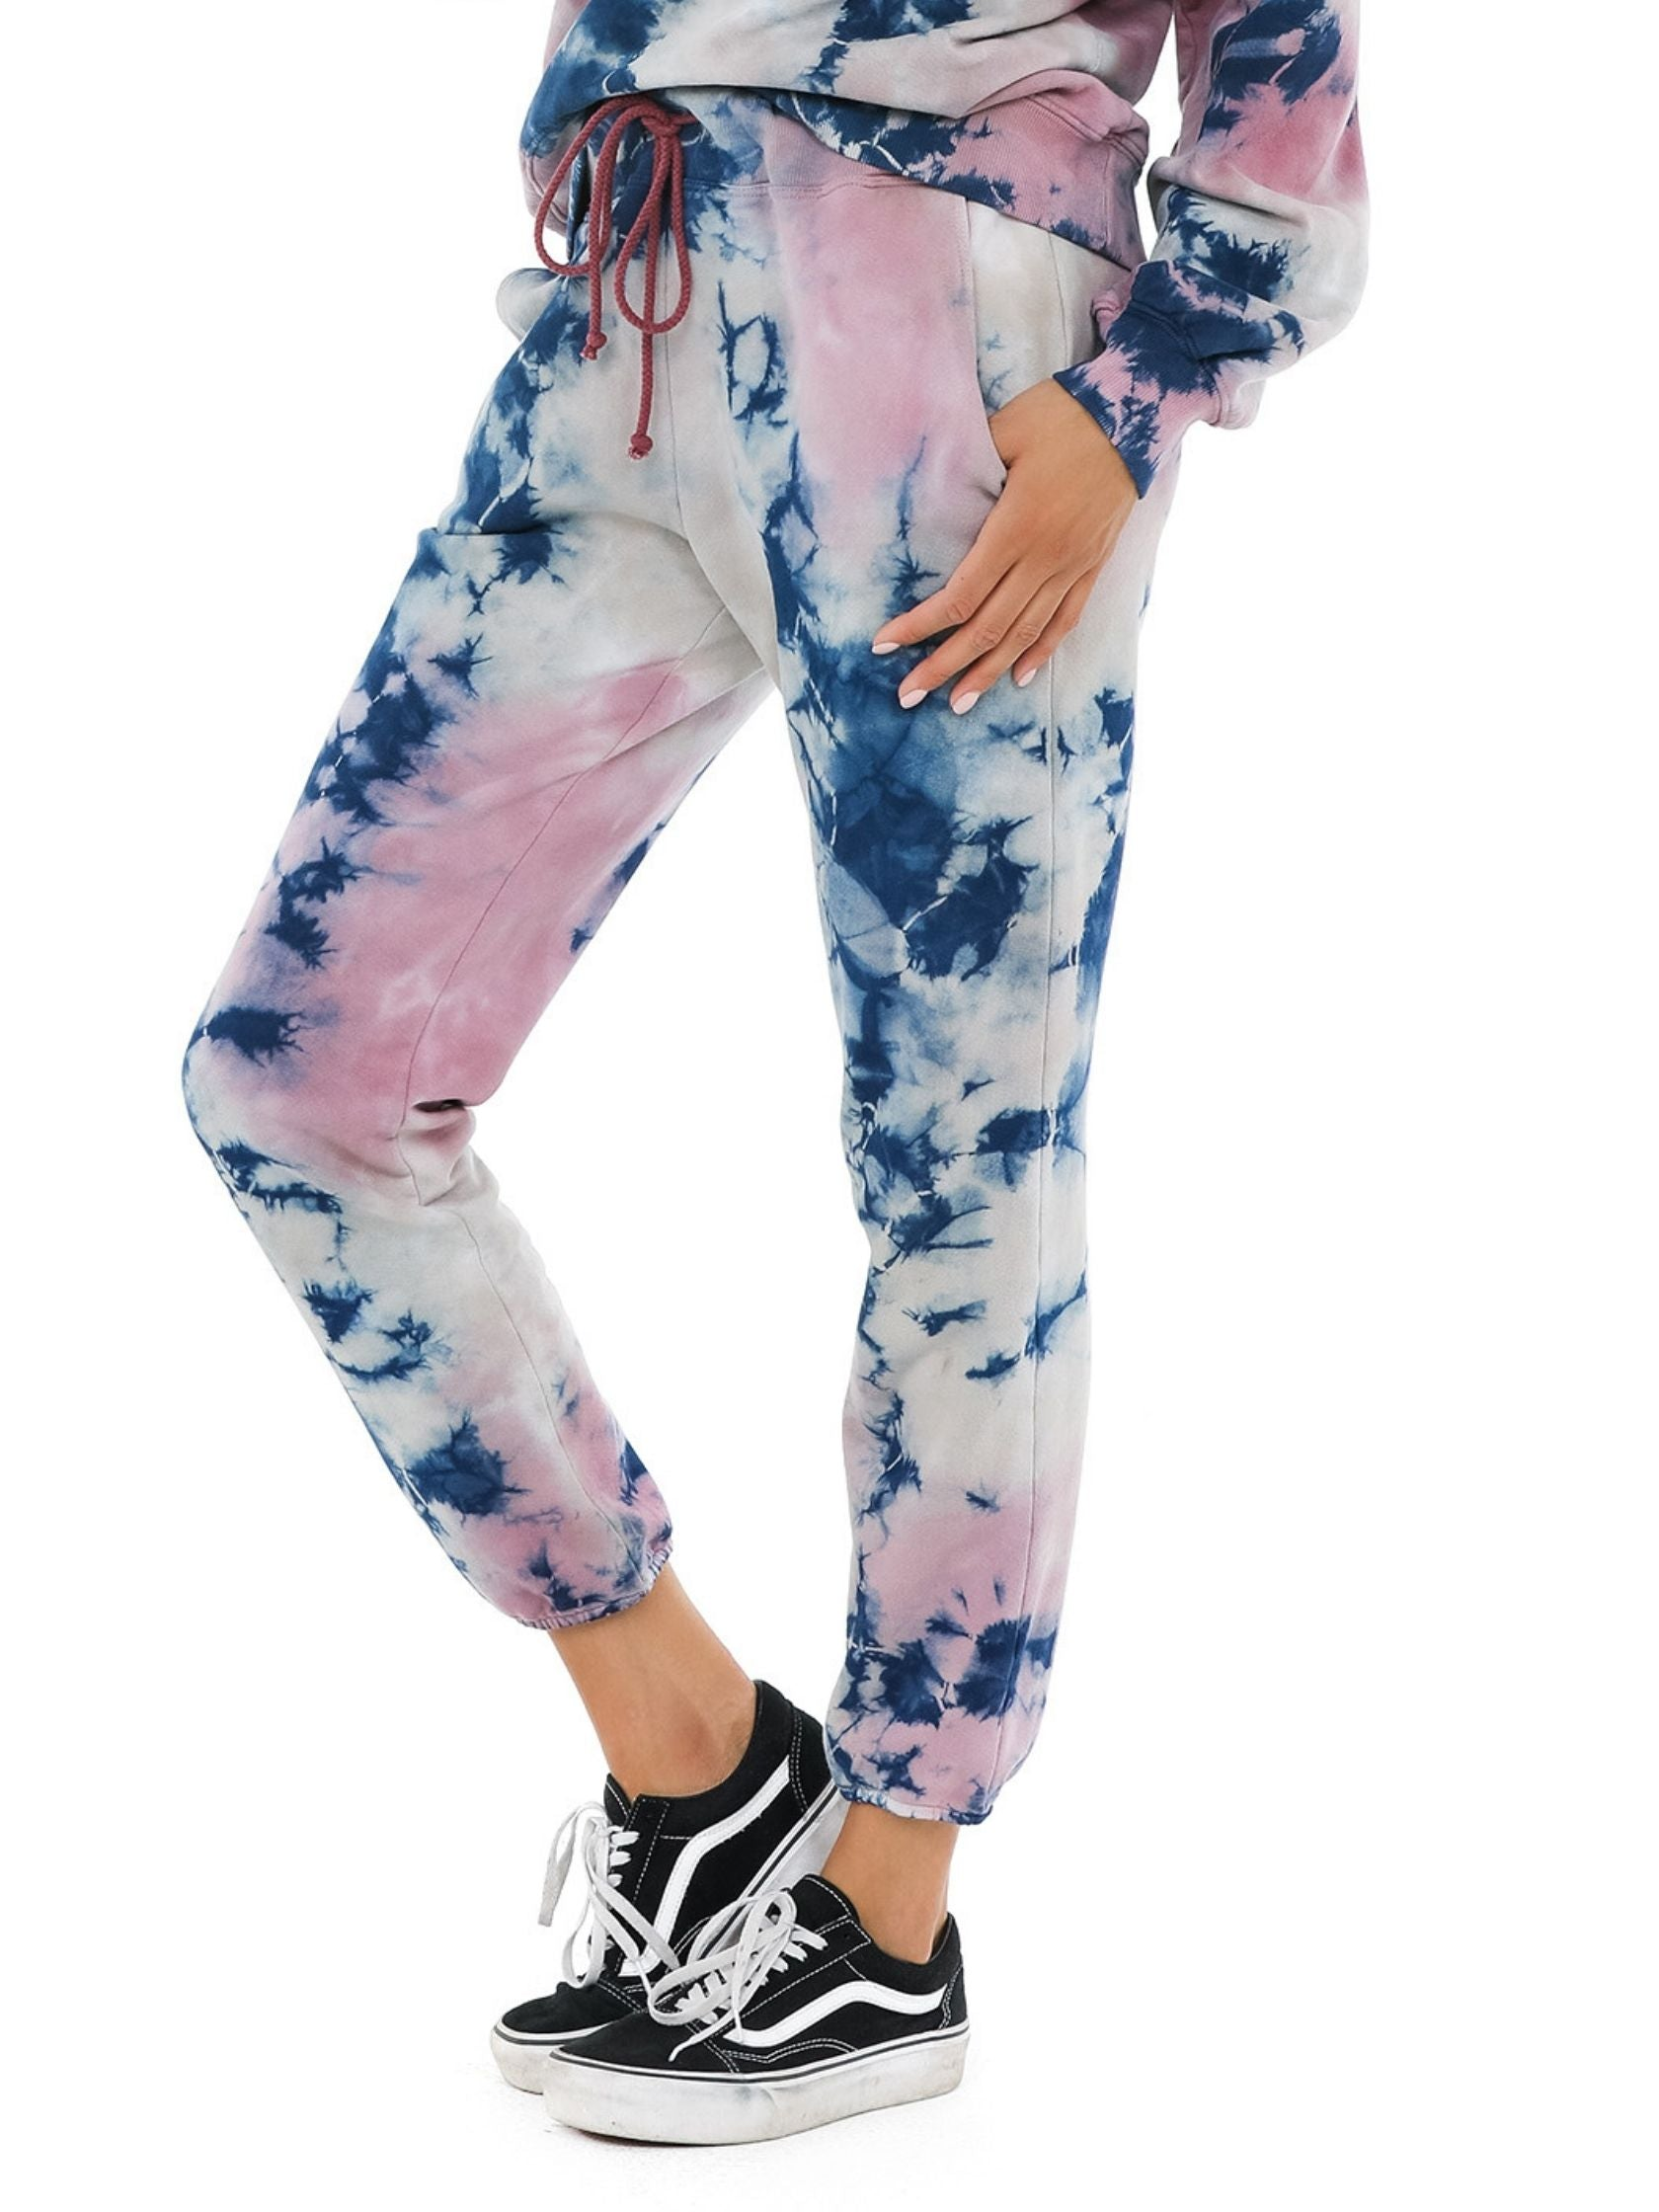 Women wearing a joggers rental from DAYDREAMER called Rouge Storm Tie Dye Jogger